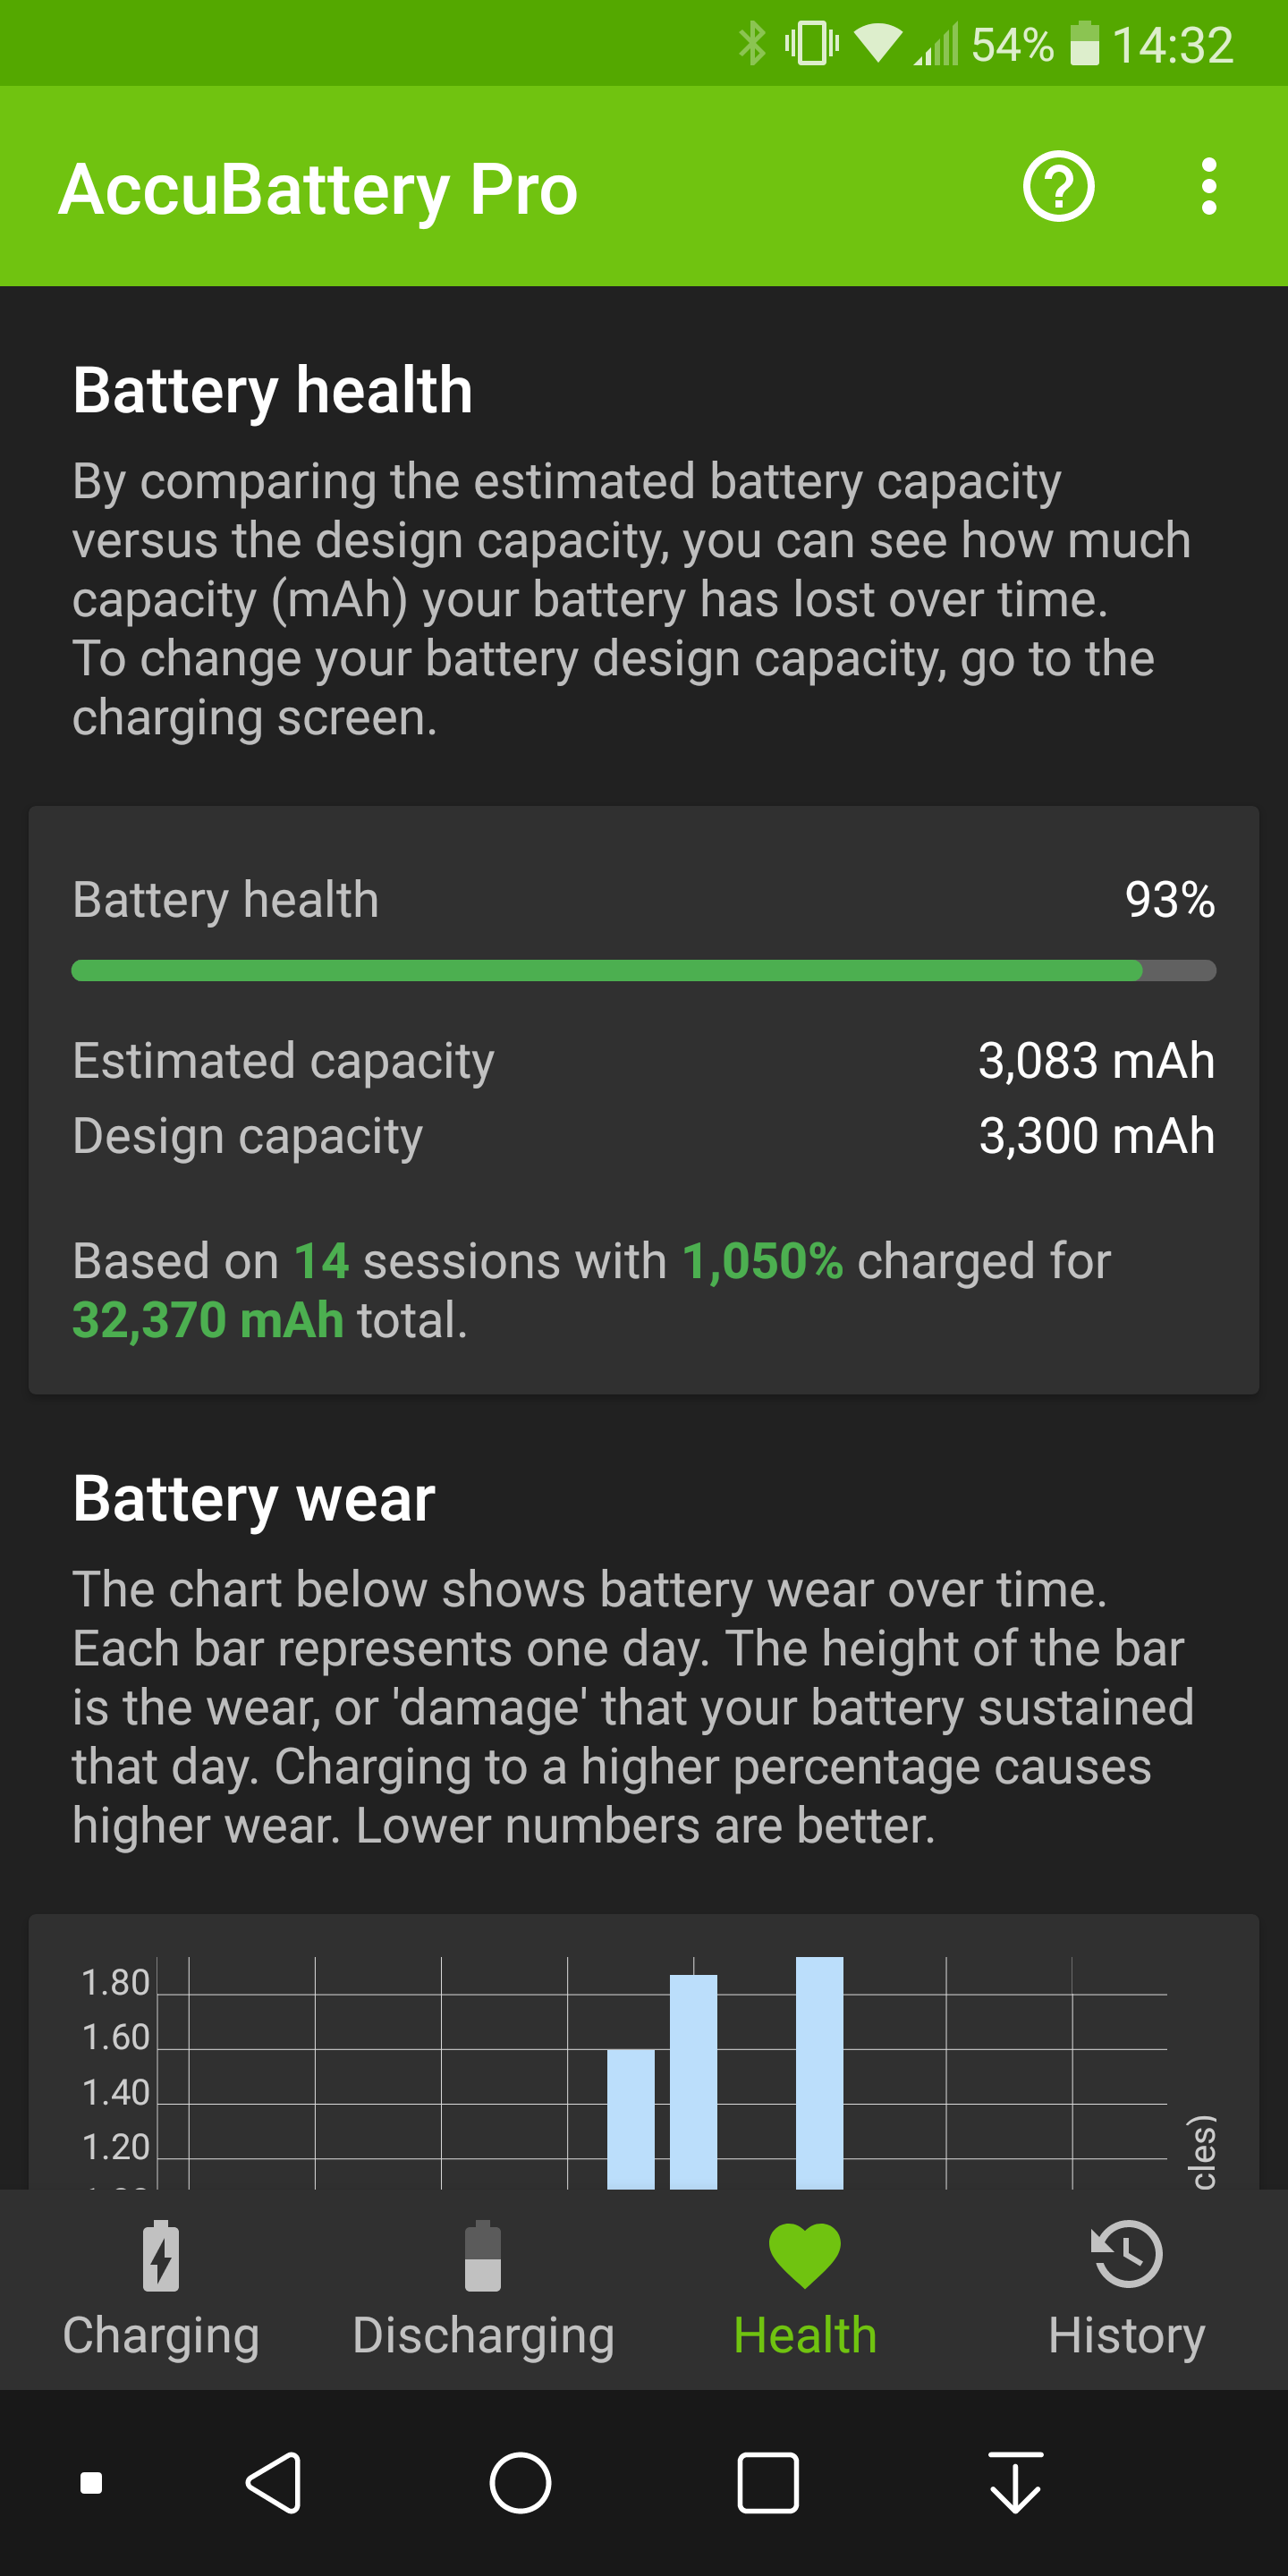 LG G6 - high battery drain - Phones and Tablets - Linus Tech